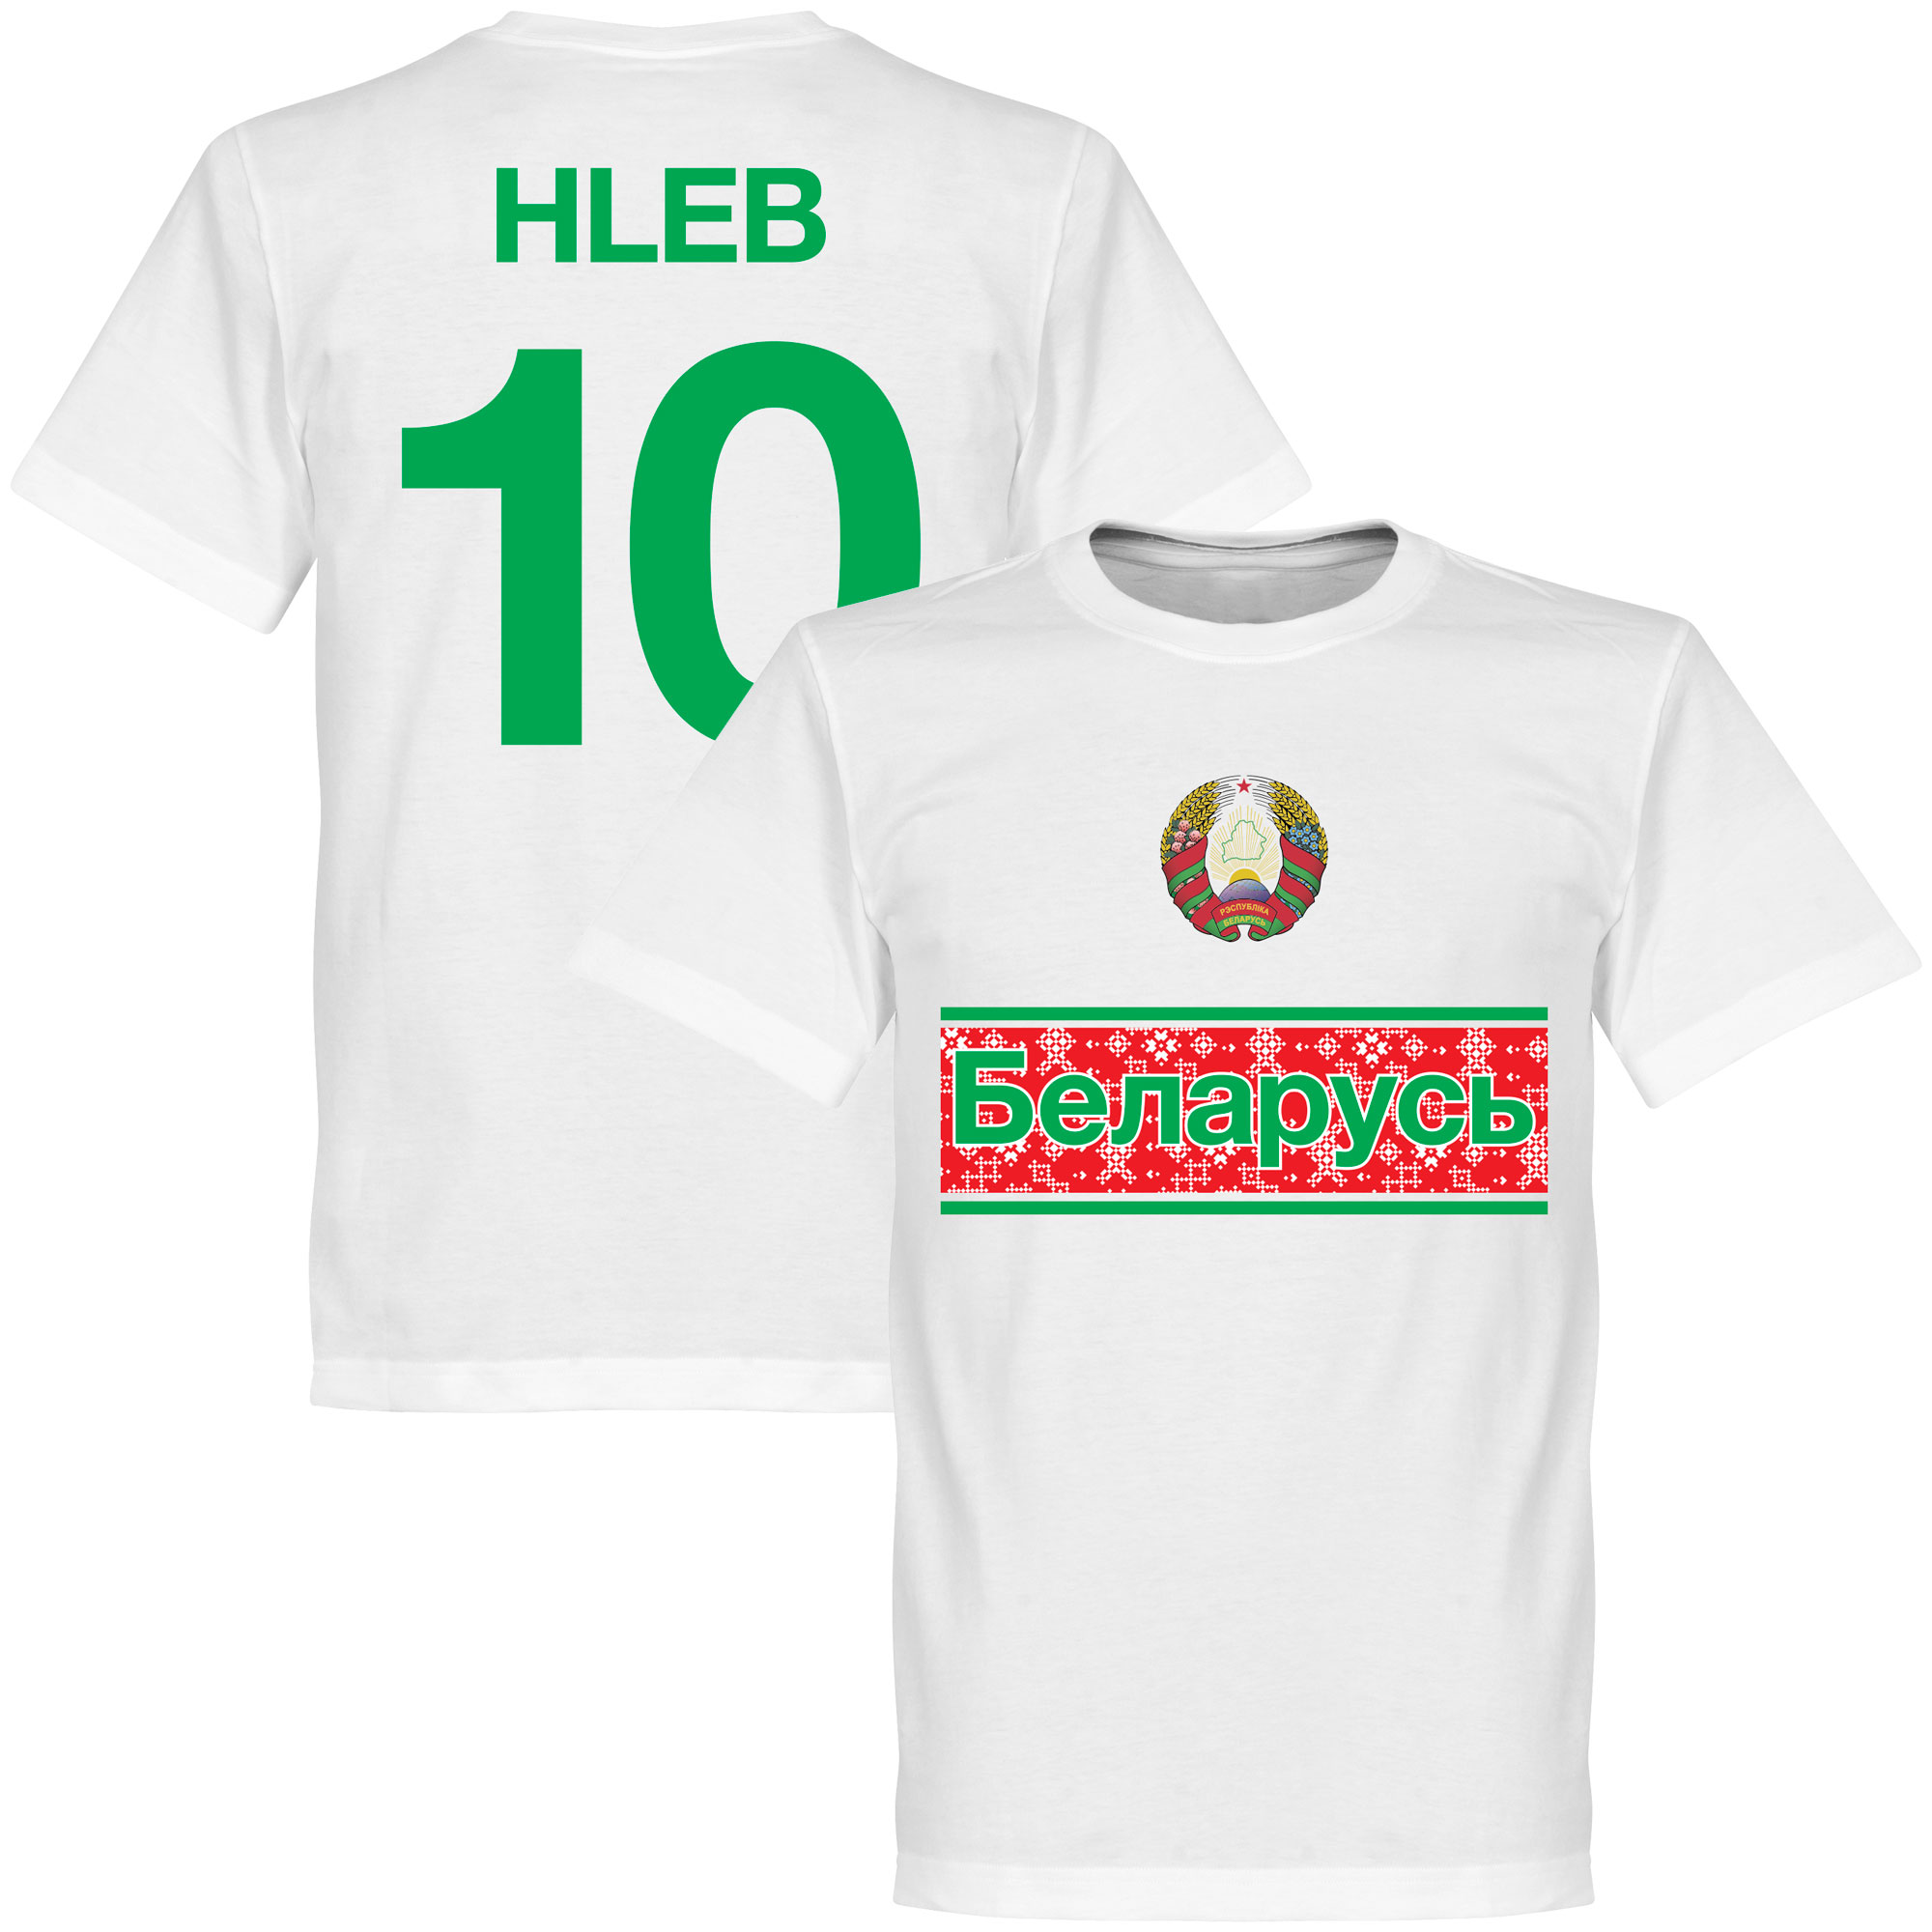 Belarus Team Hleb Tee - White - XL